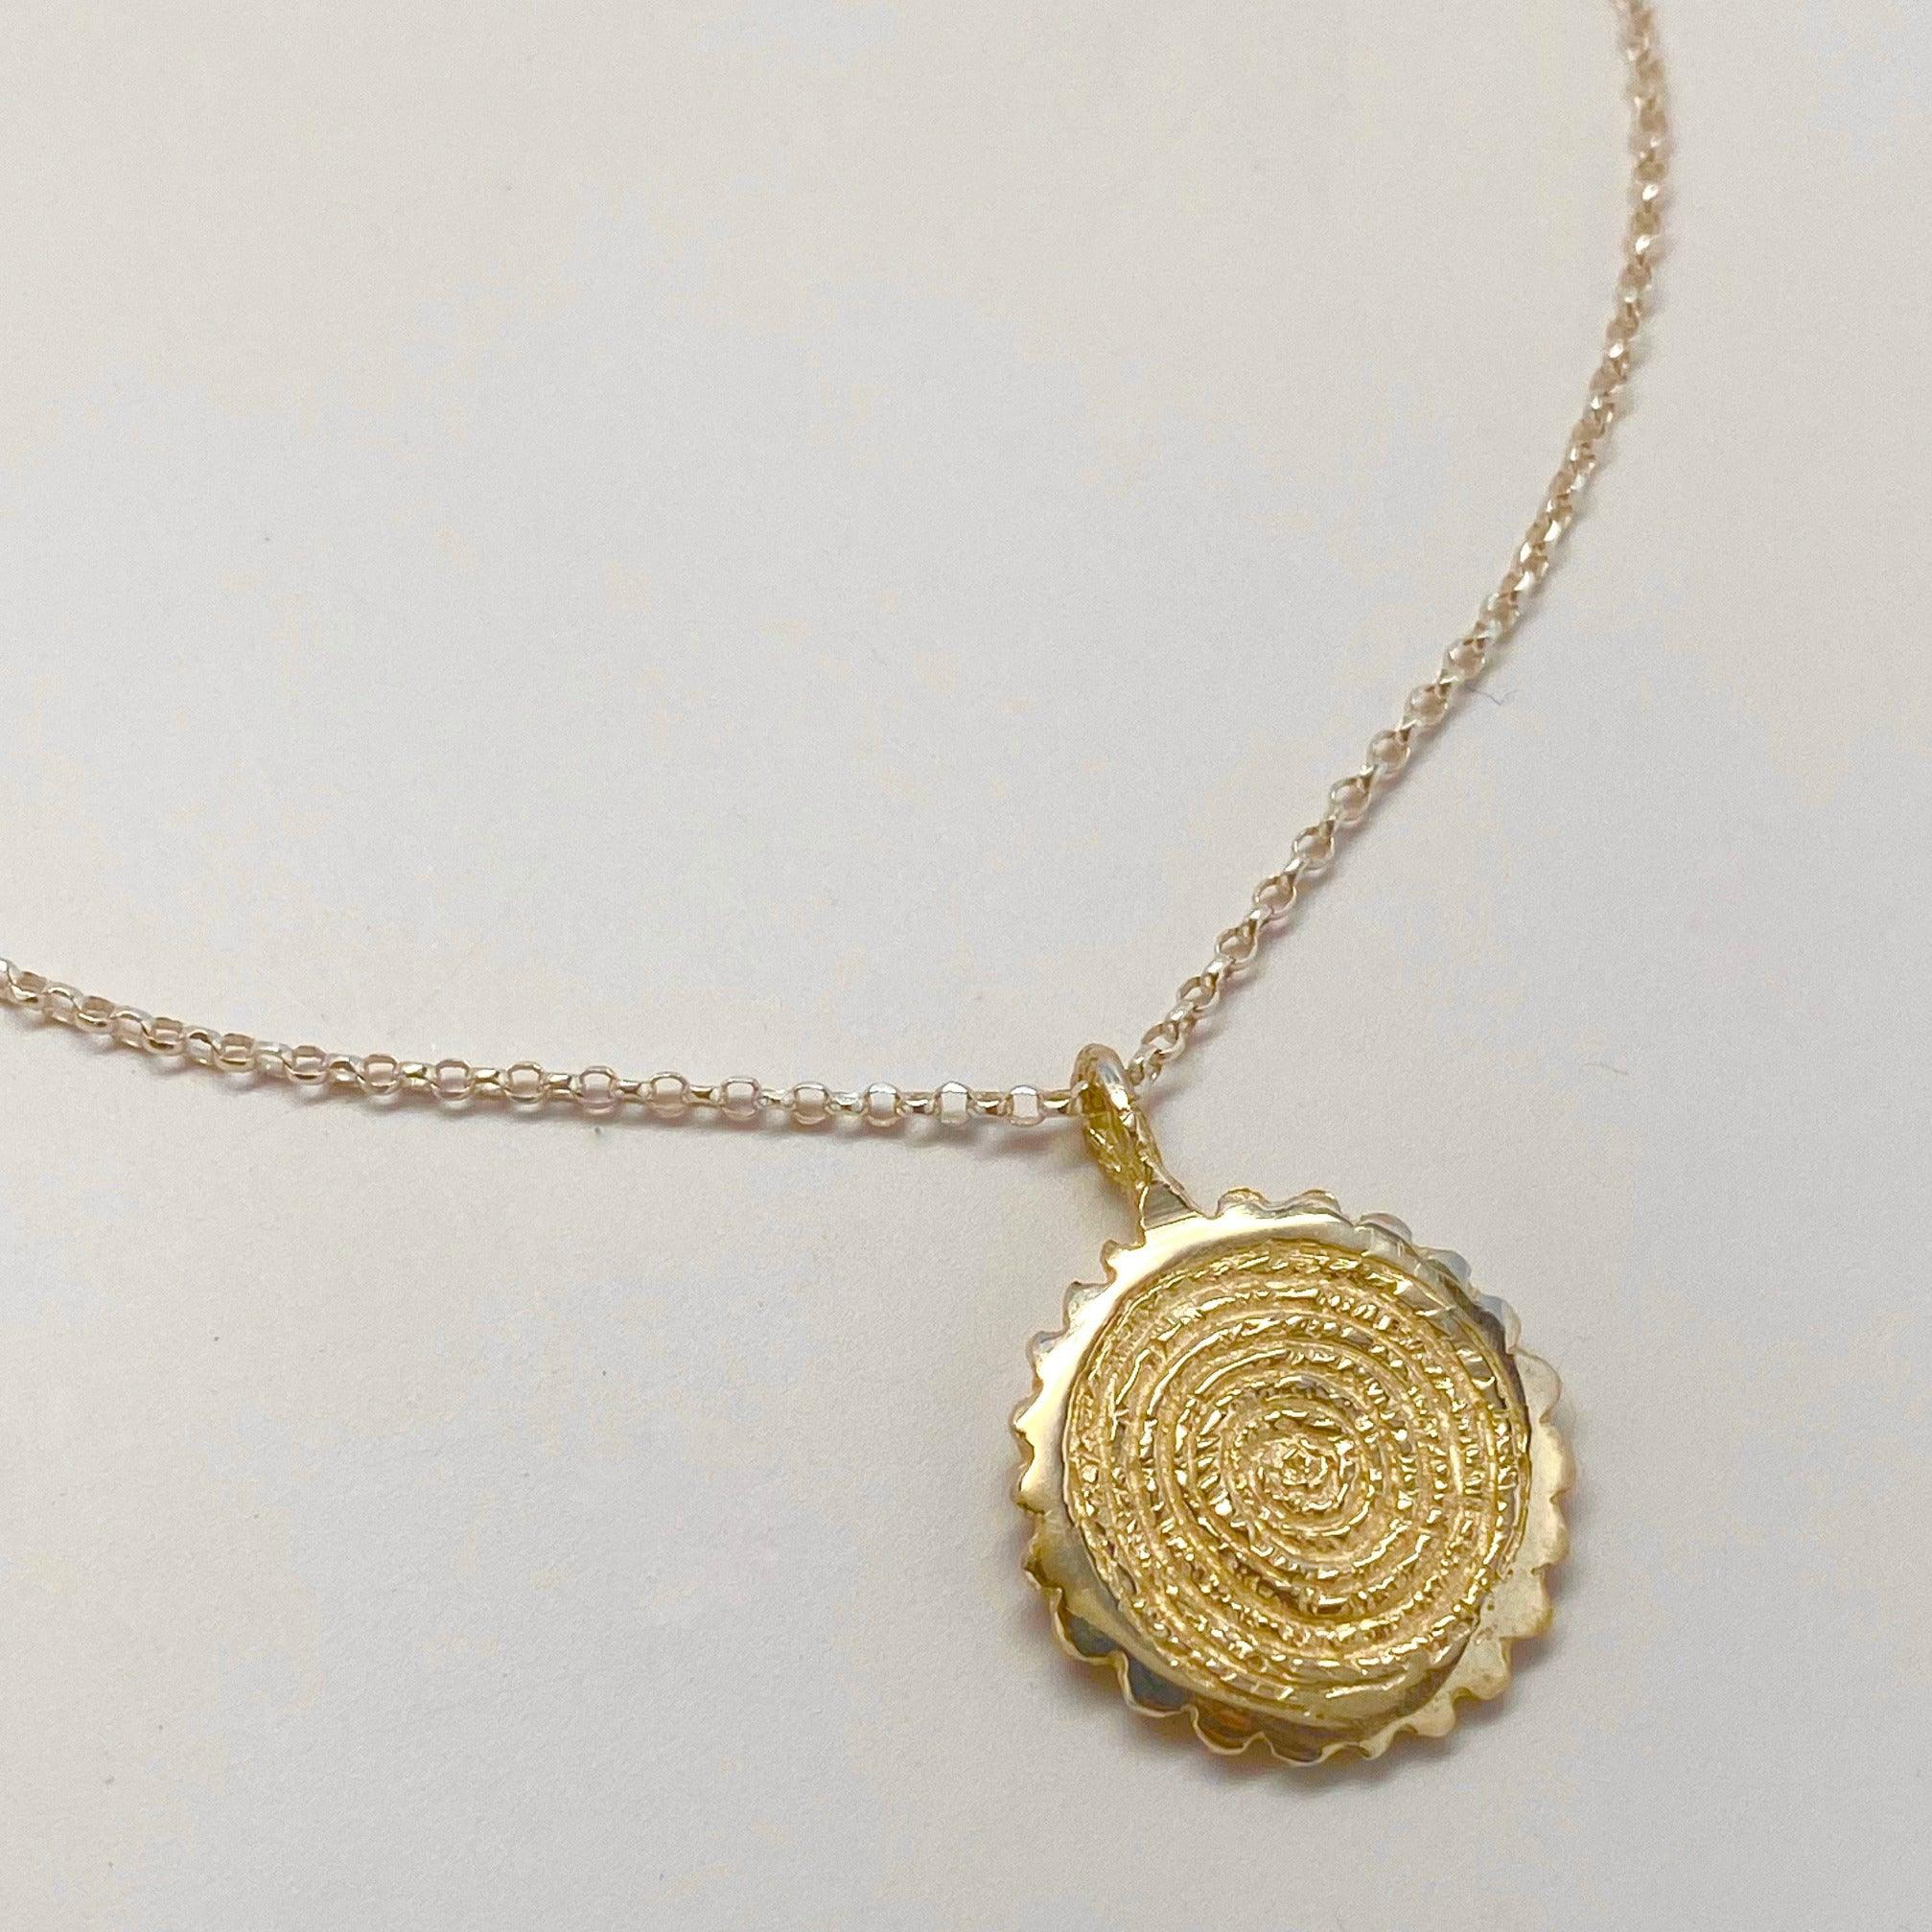 Gold-Plate Helix Necklace